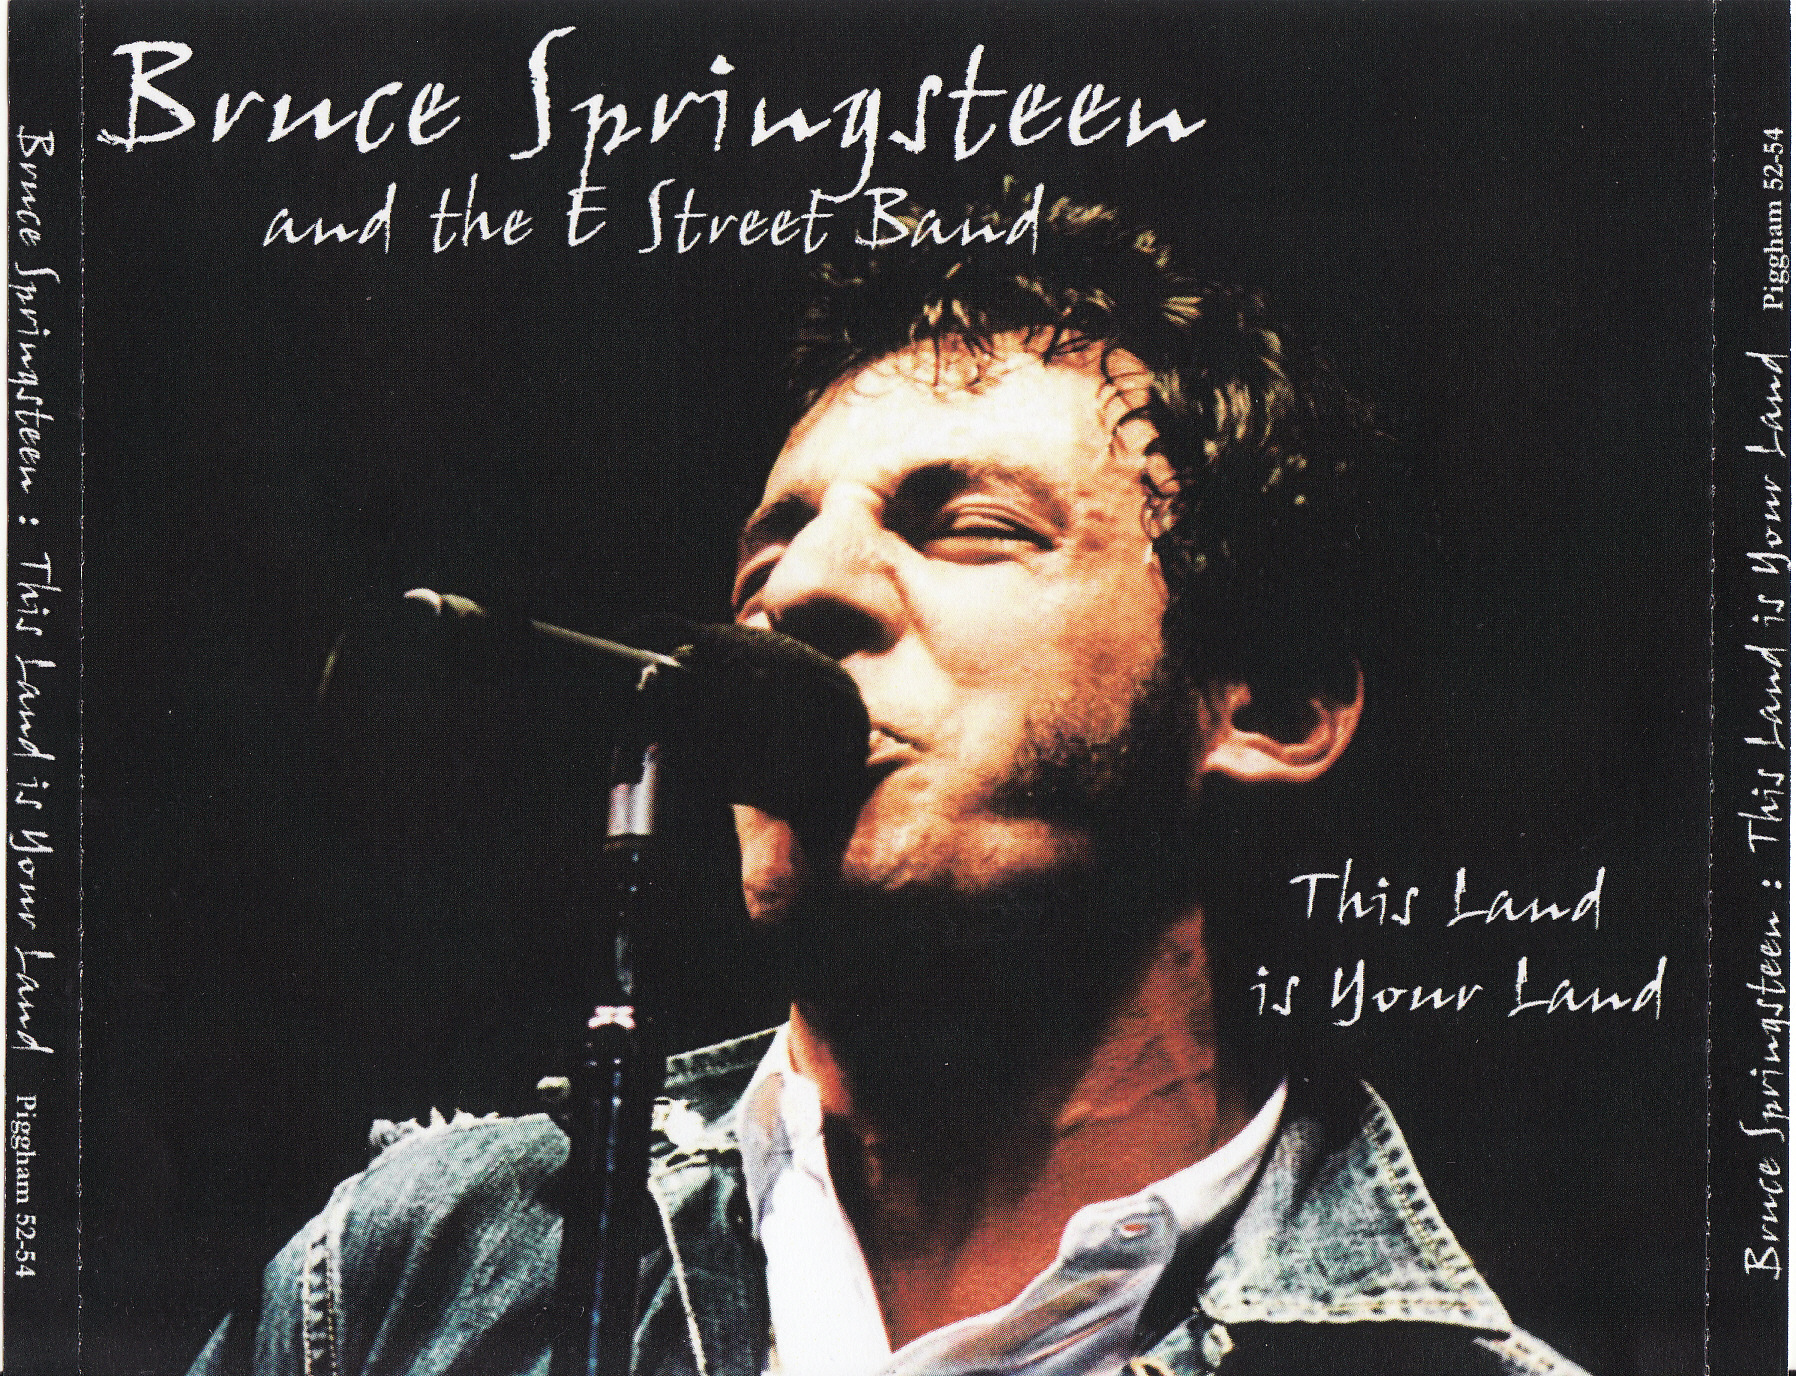 Bruce Springsteen Bootlegs: This Land Is Your Land [Piggham]   03 Jul 1981